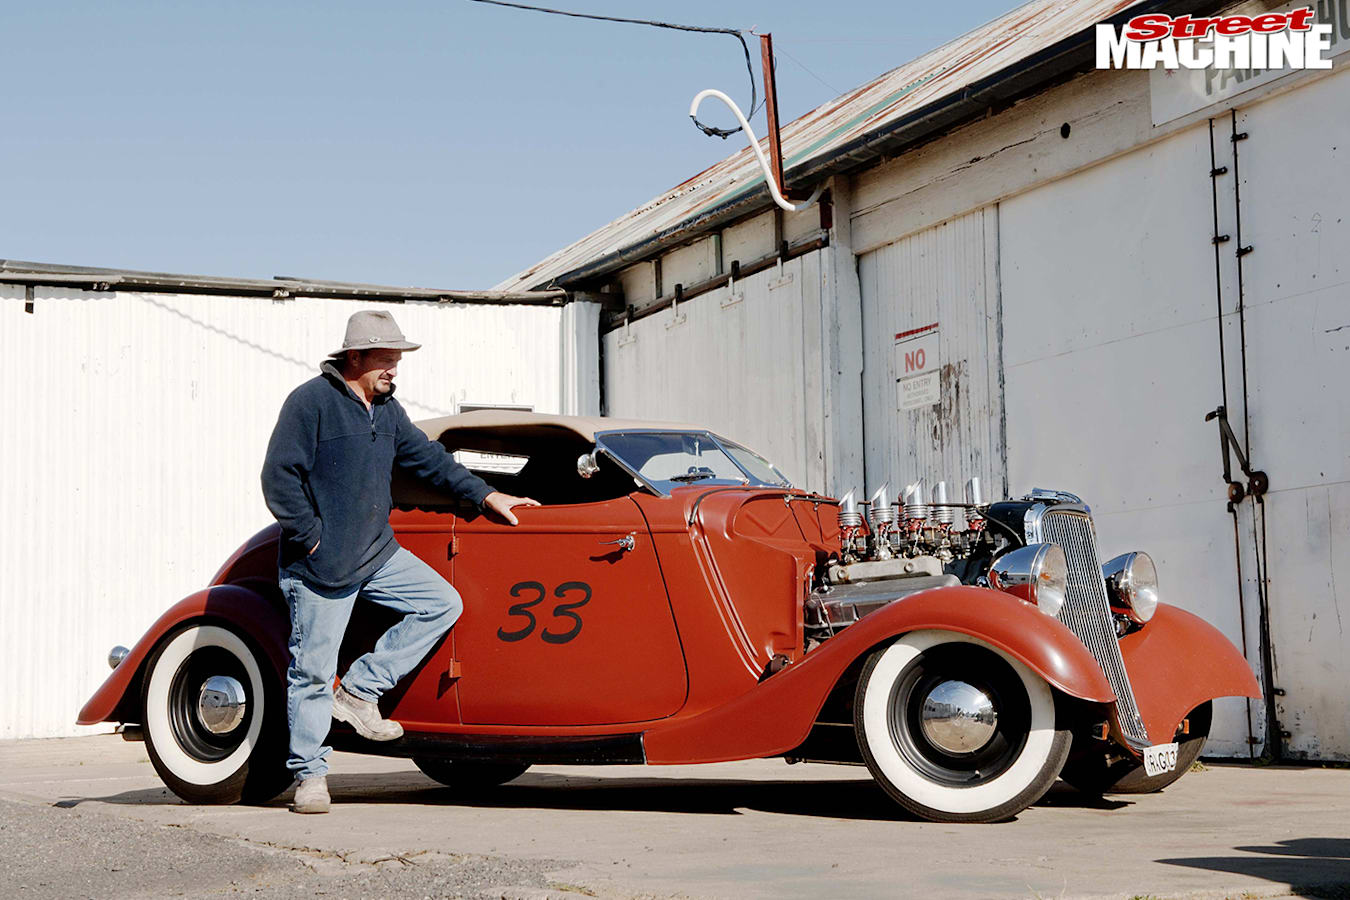 Street Machine Features Townsend Family Hot Rods 7